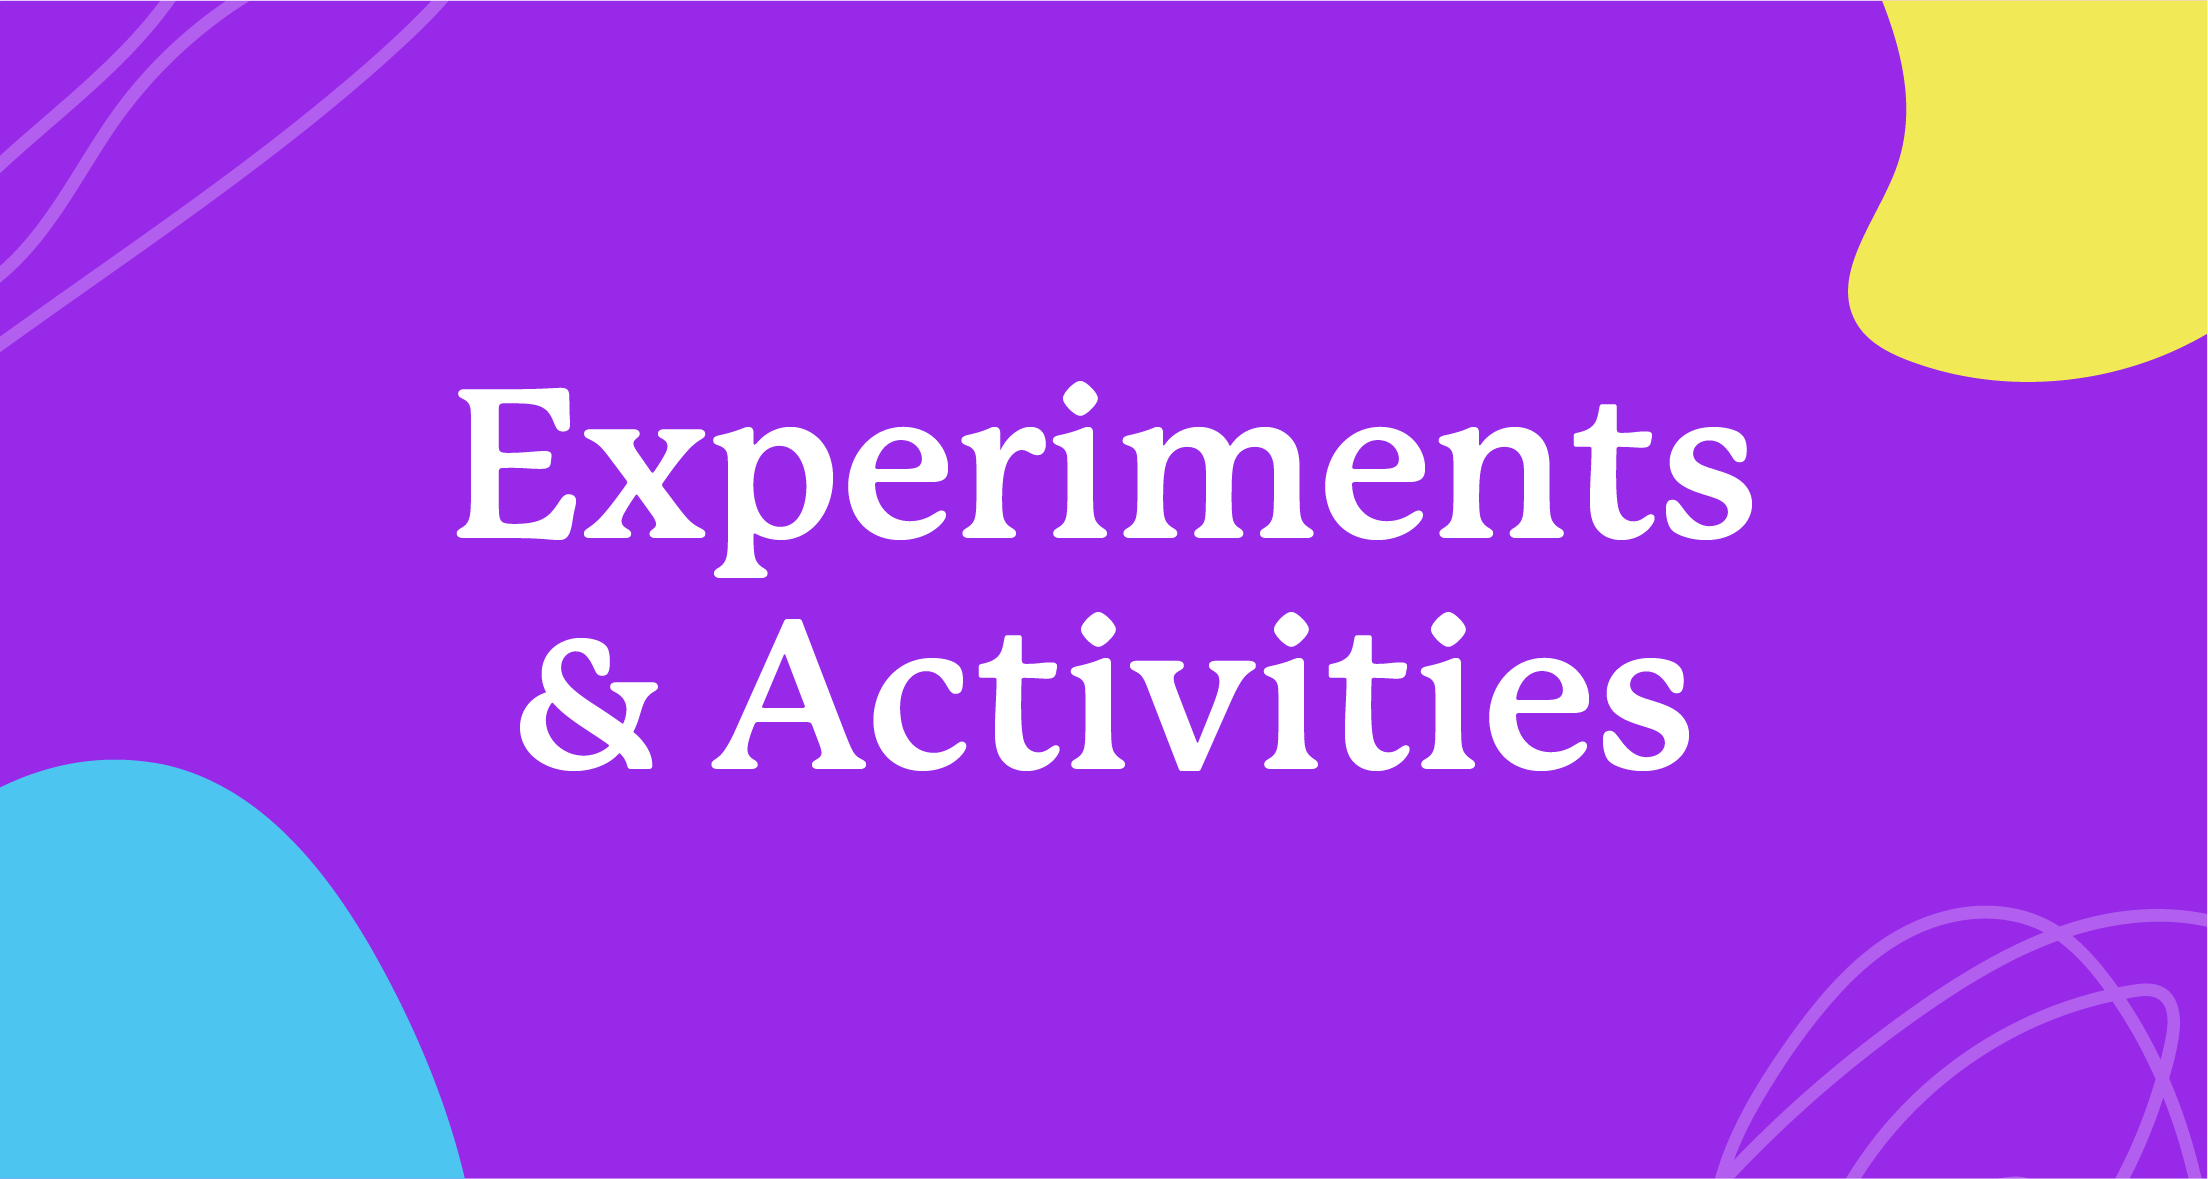 A violet graphic that says 'Experiments and Activities'